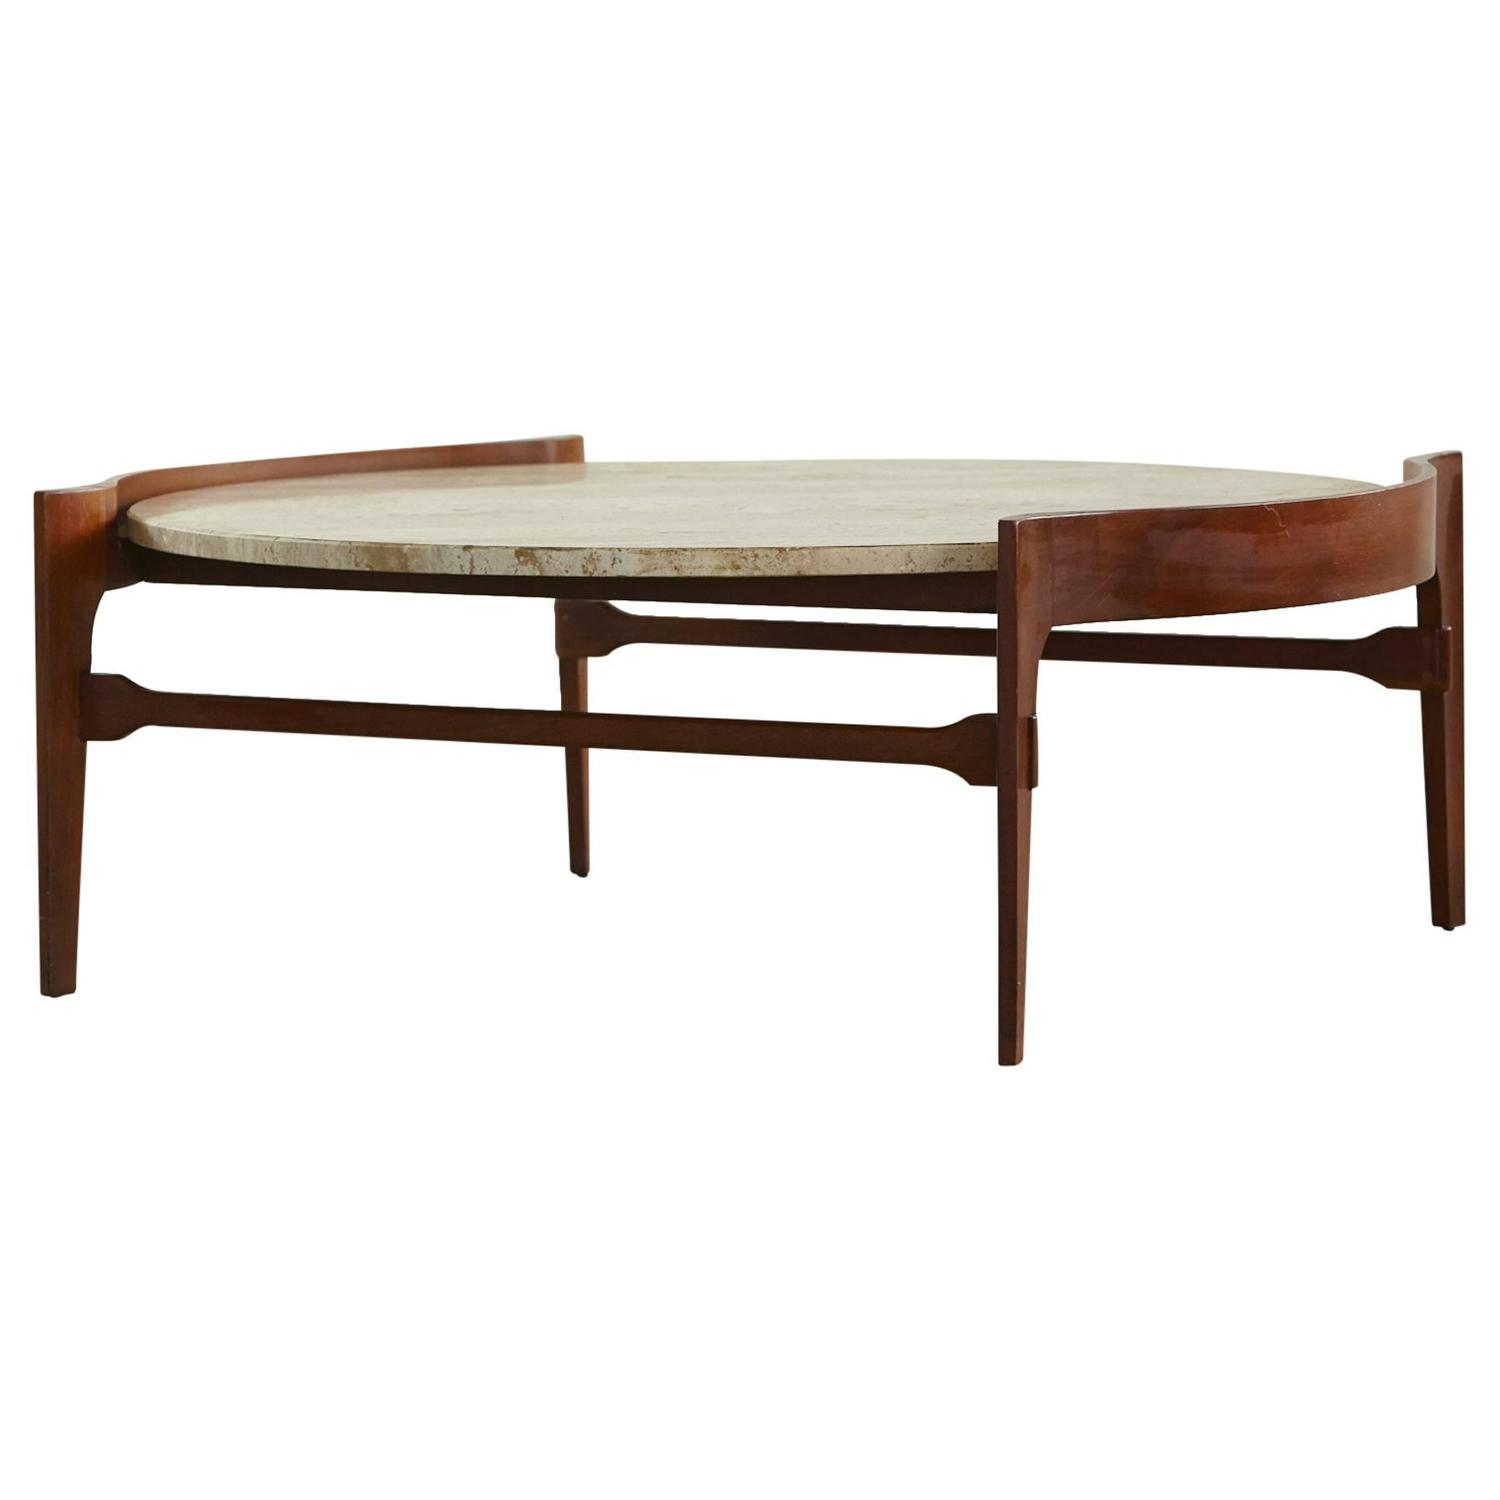 Sculptural Travertine and Walnut Coffee Table by Bertha Schaefer